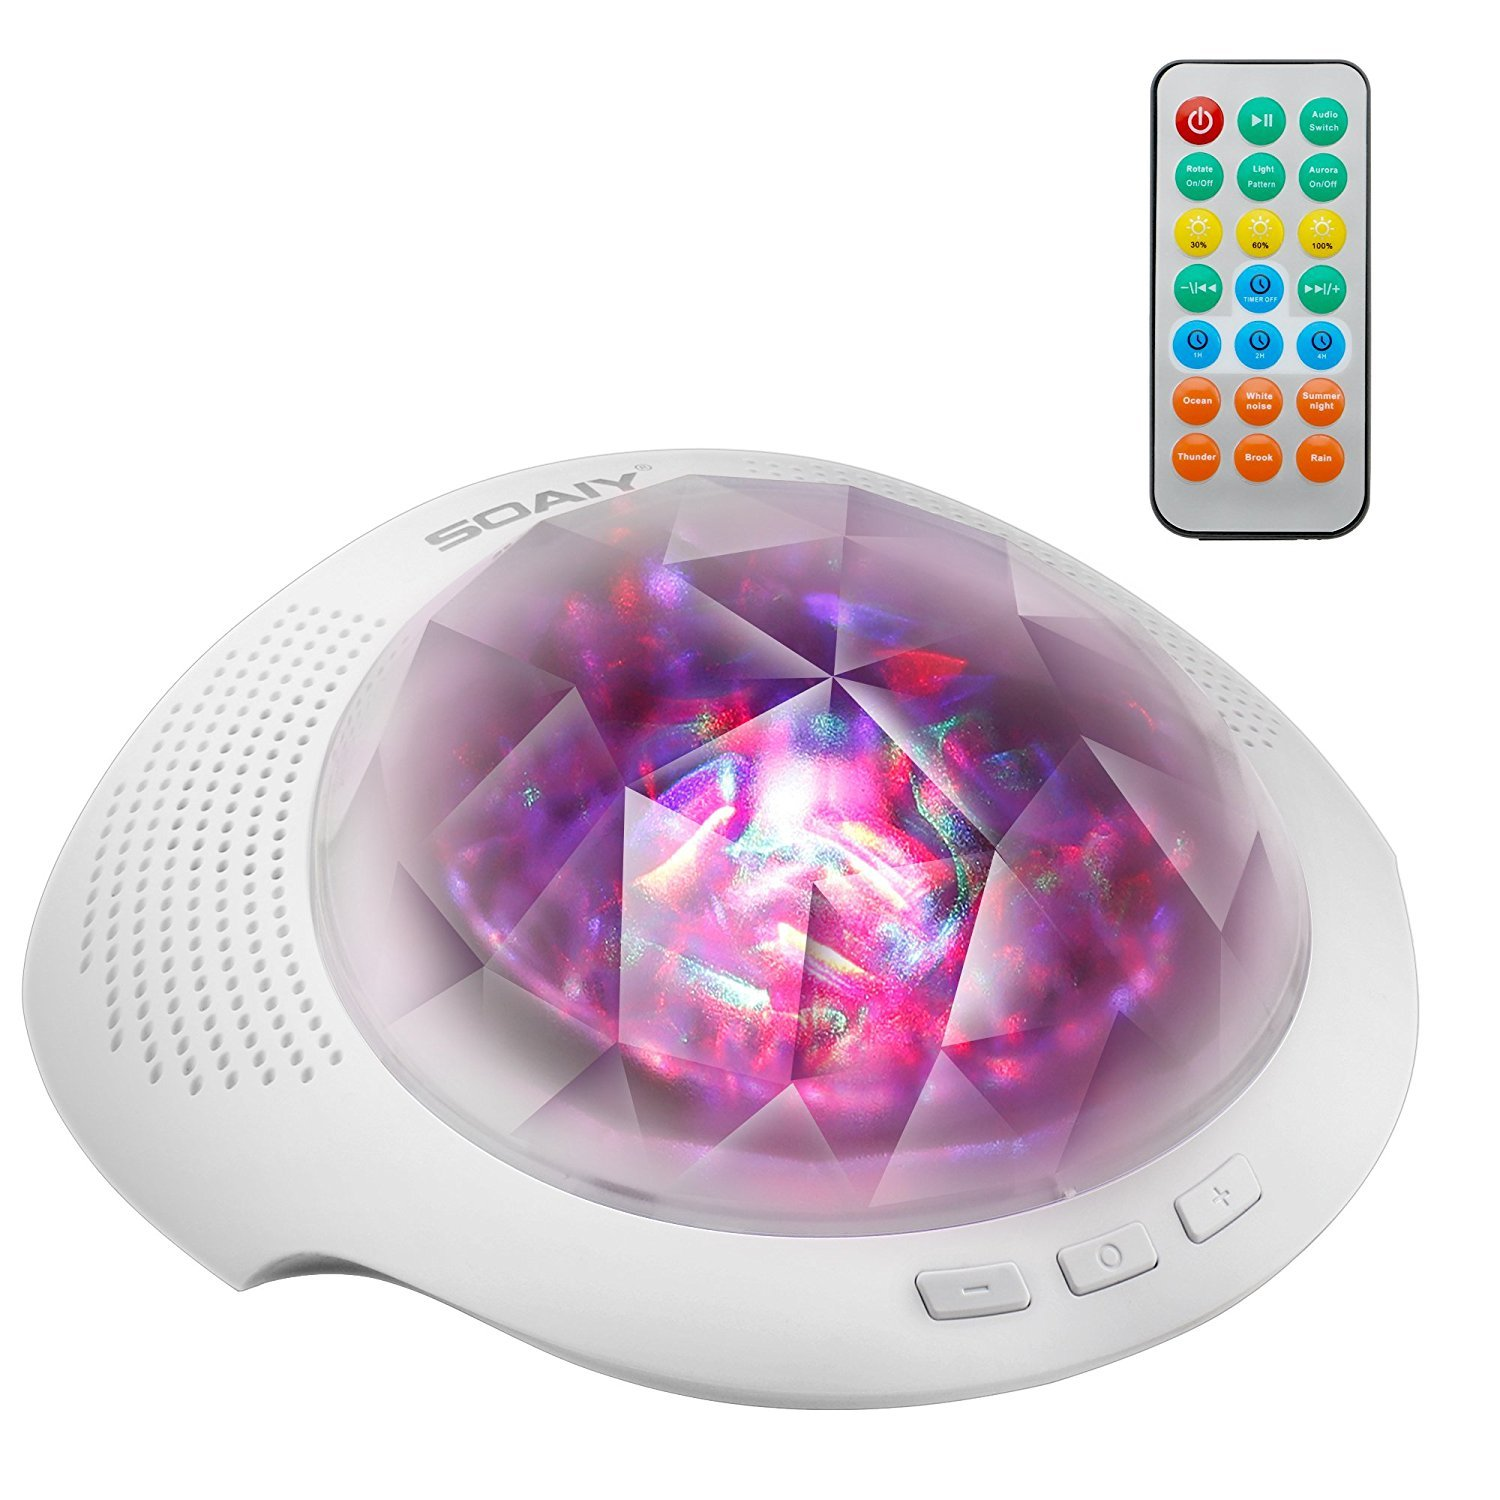 SOAIY Sleep Sound Machine & Northern Light Projector with Bluetooth, Remote, Timer, White